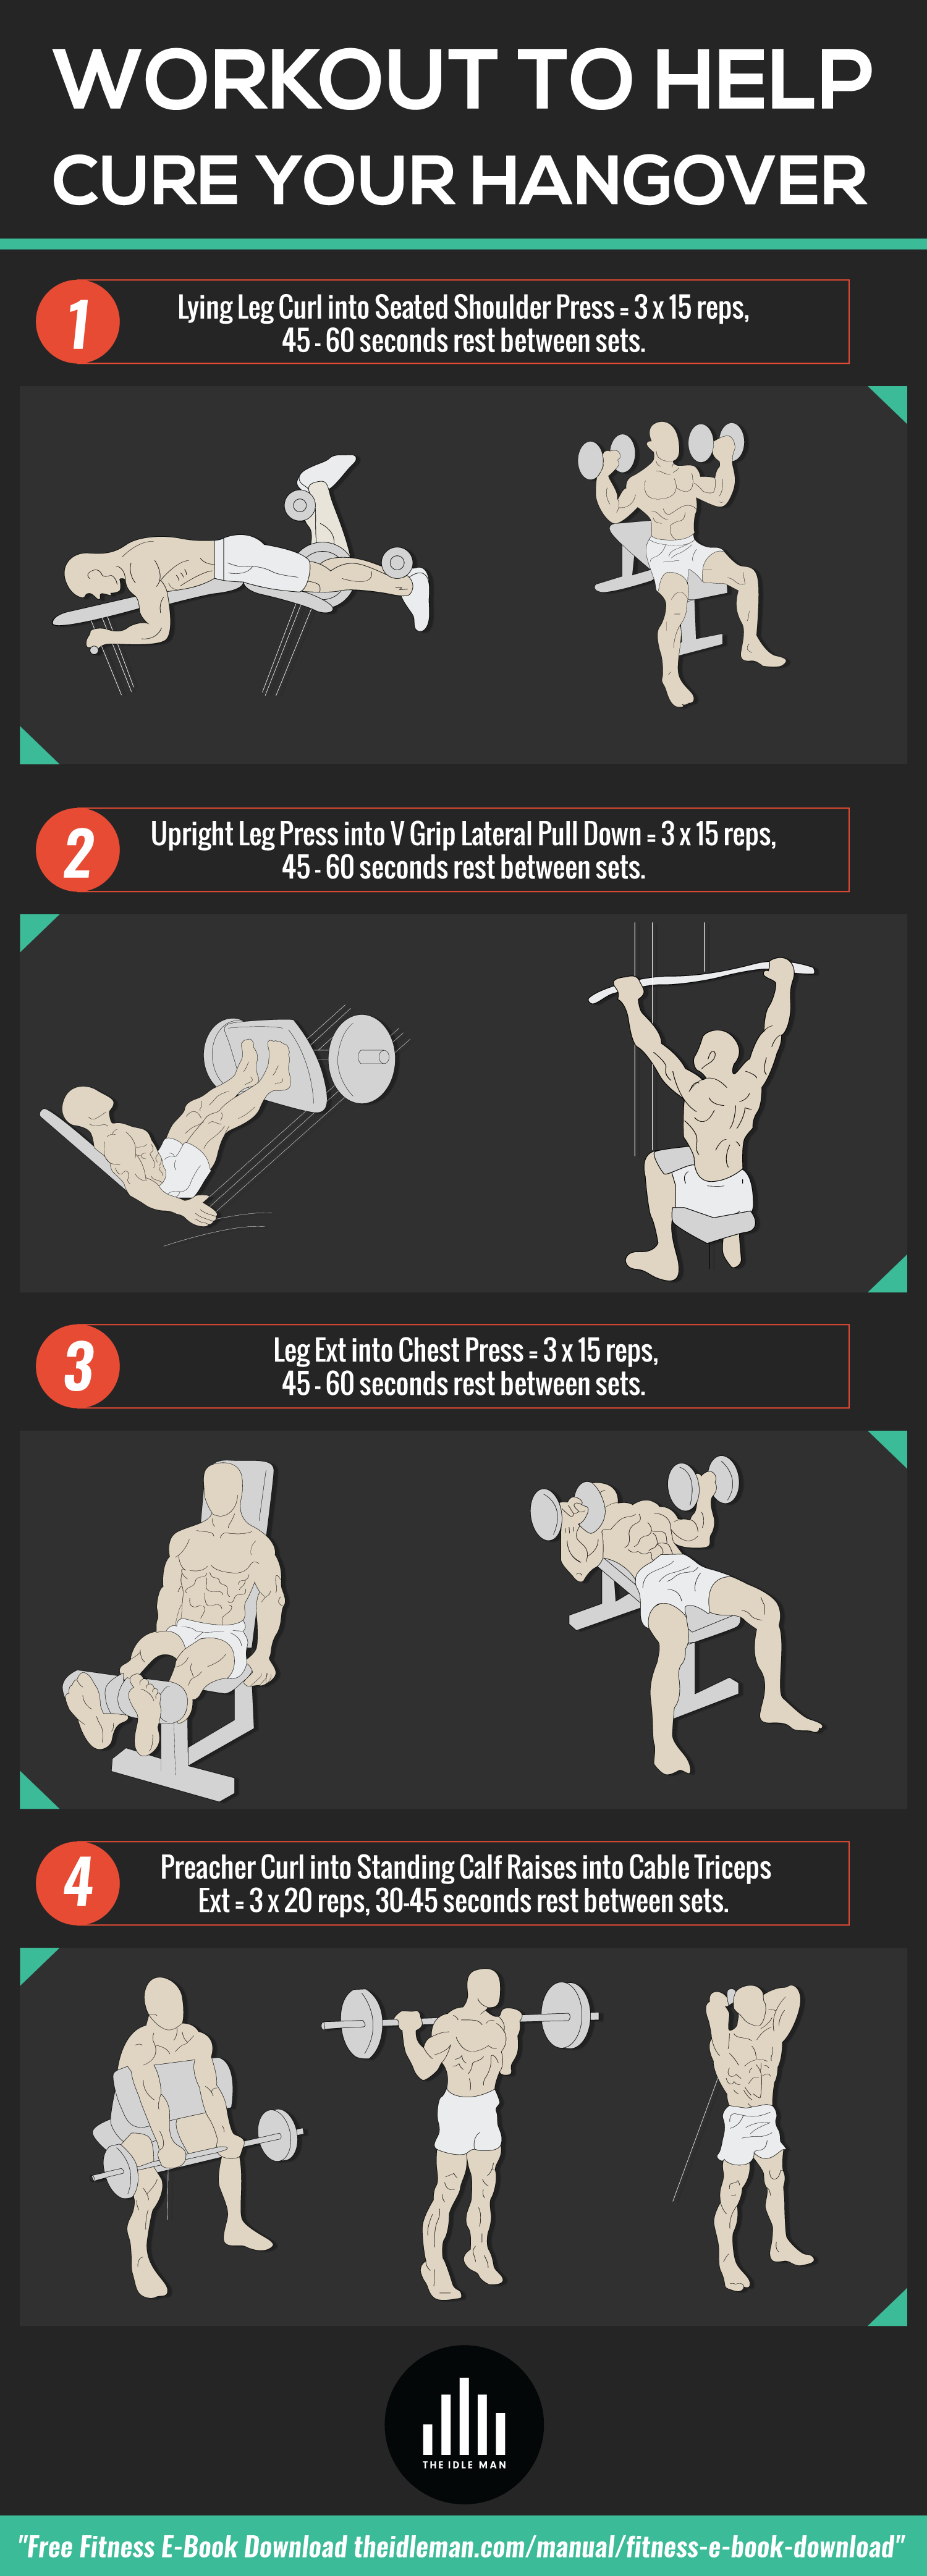 Workout To Help Cure Your Hangover Infographic